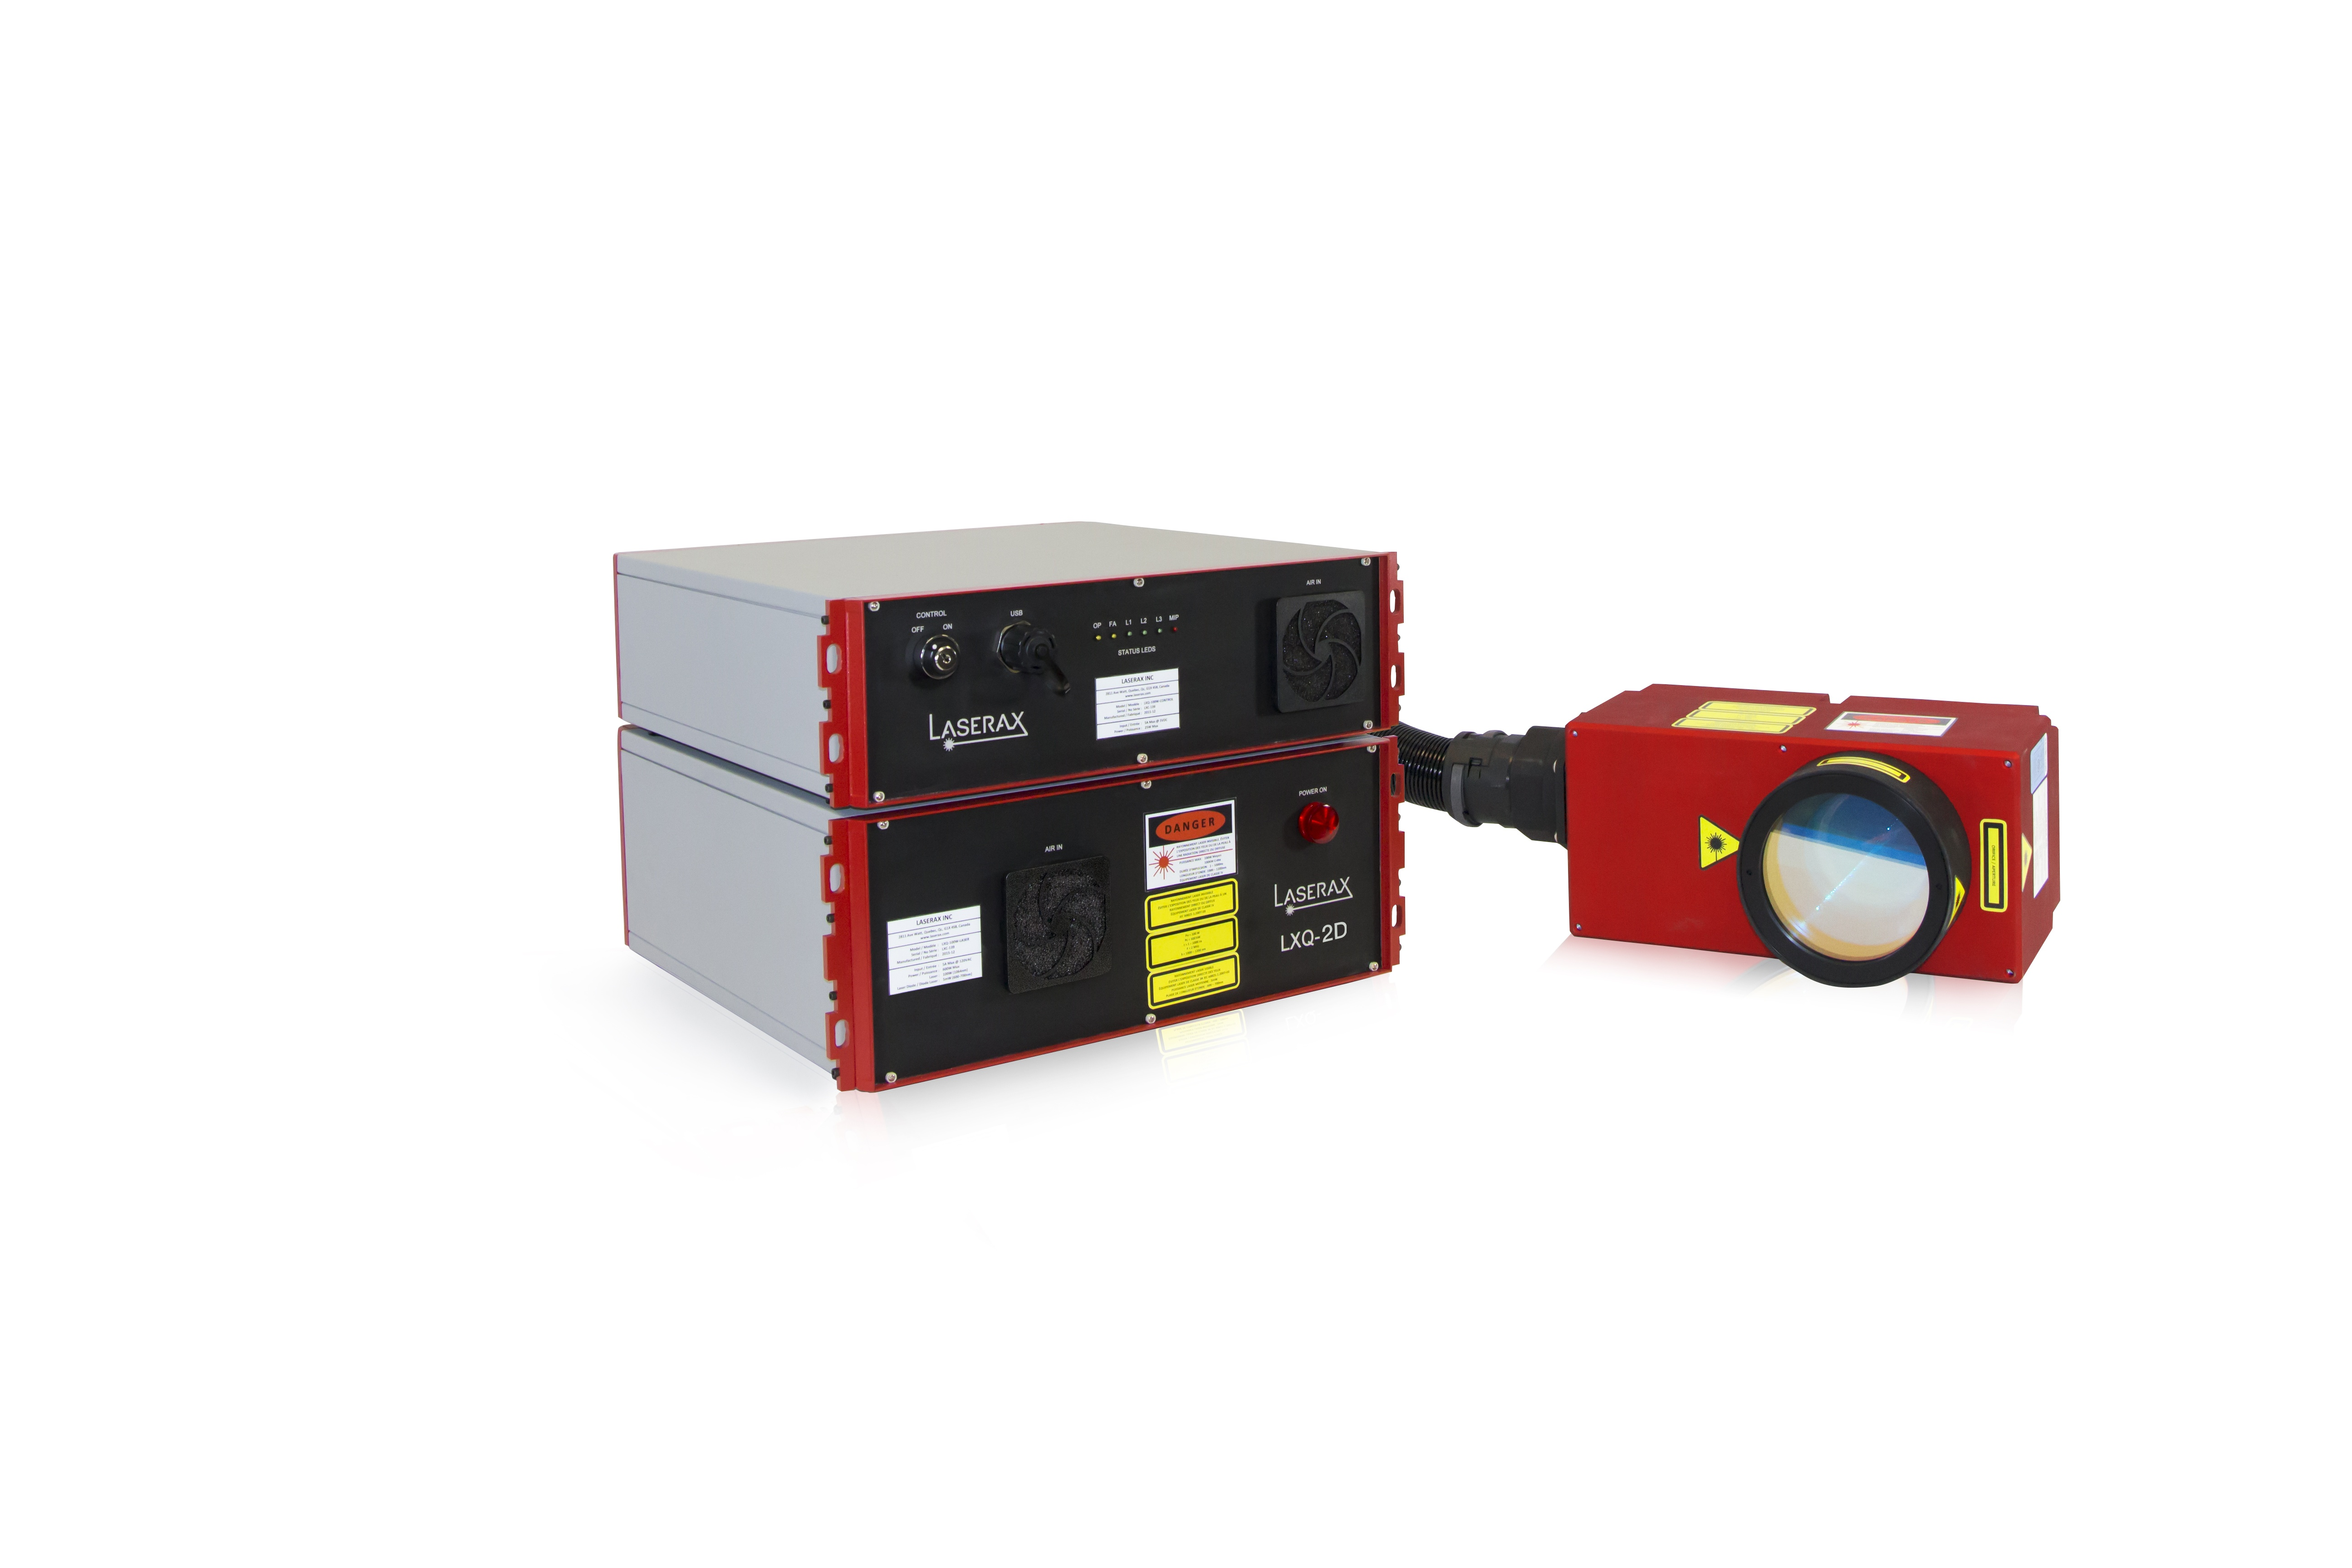 Laserax 2D fiber laser - LXQ. The laser is shown here with a laser source, controller and laser head